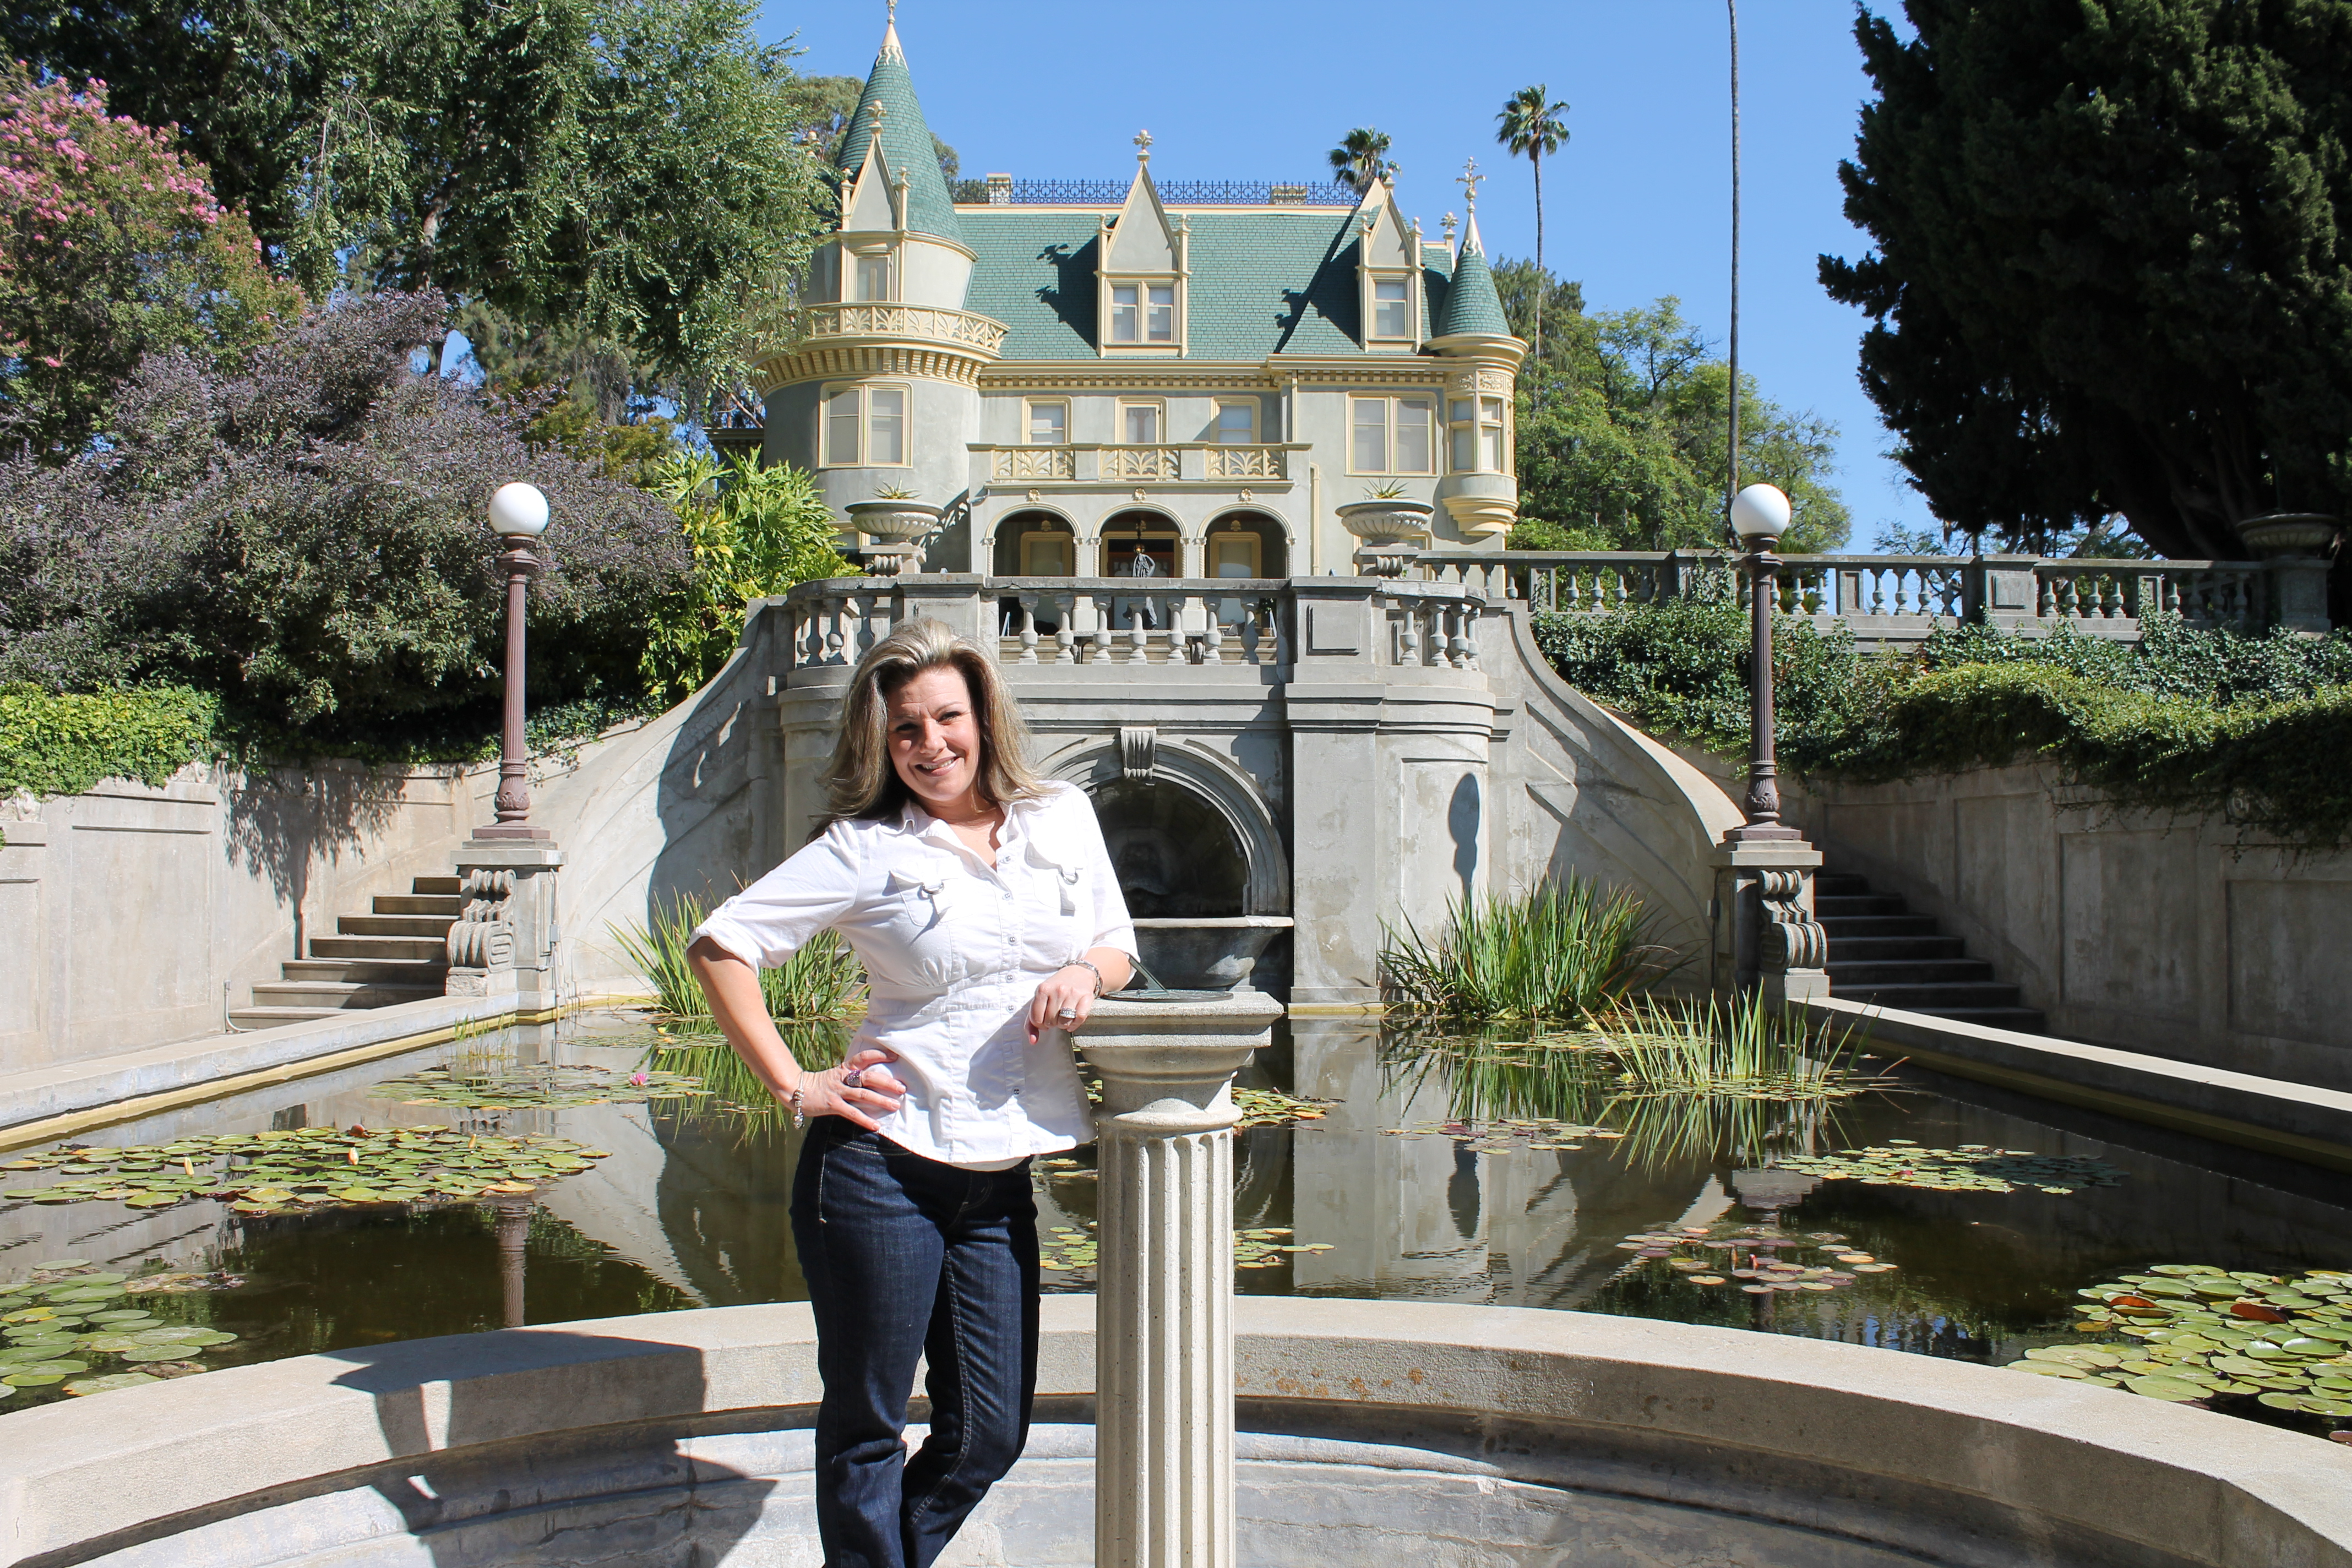 Things To See In The Inland Empire Kimberly Crest In Redlands California